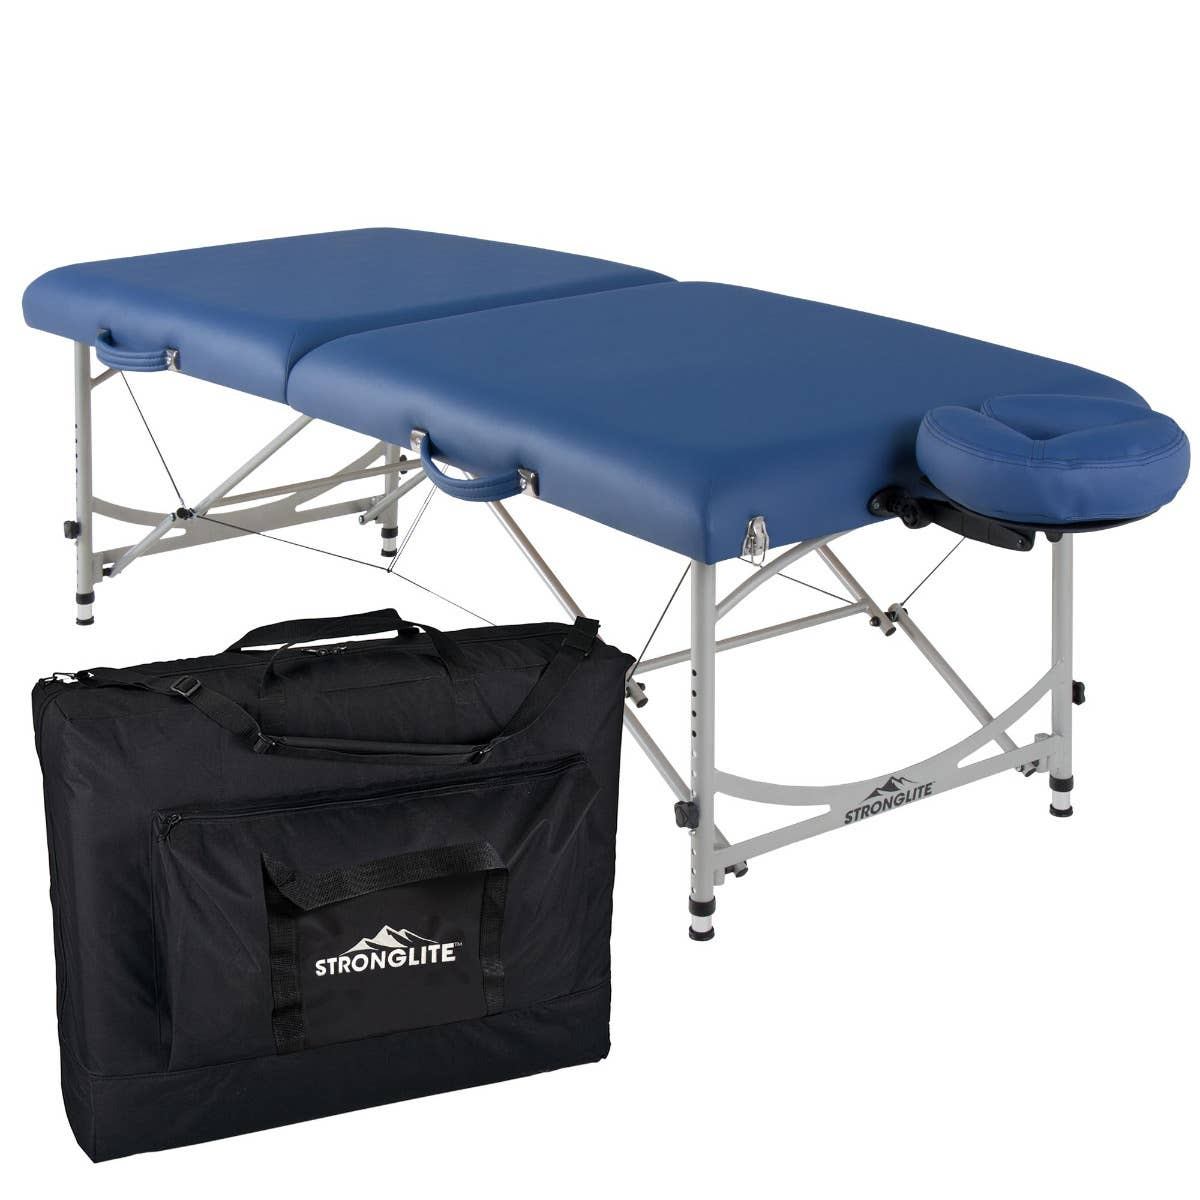 Versalite Pro aluminum light weight portable massage table by Stronglite, in Royal Blue color